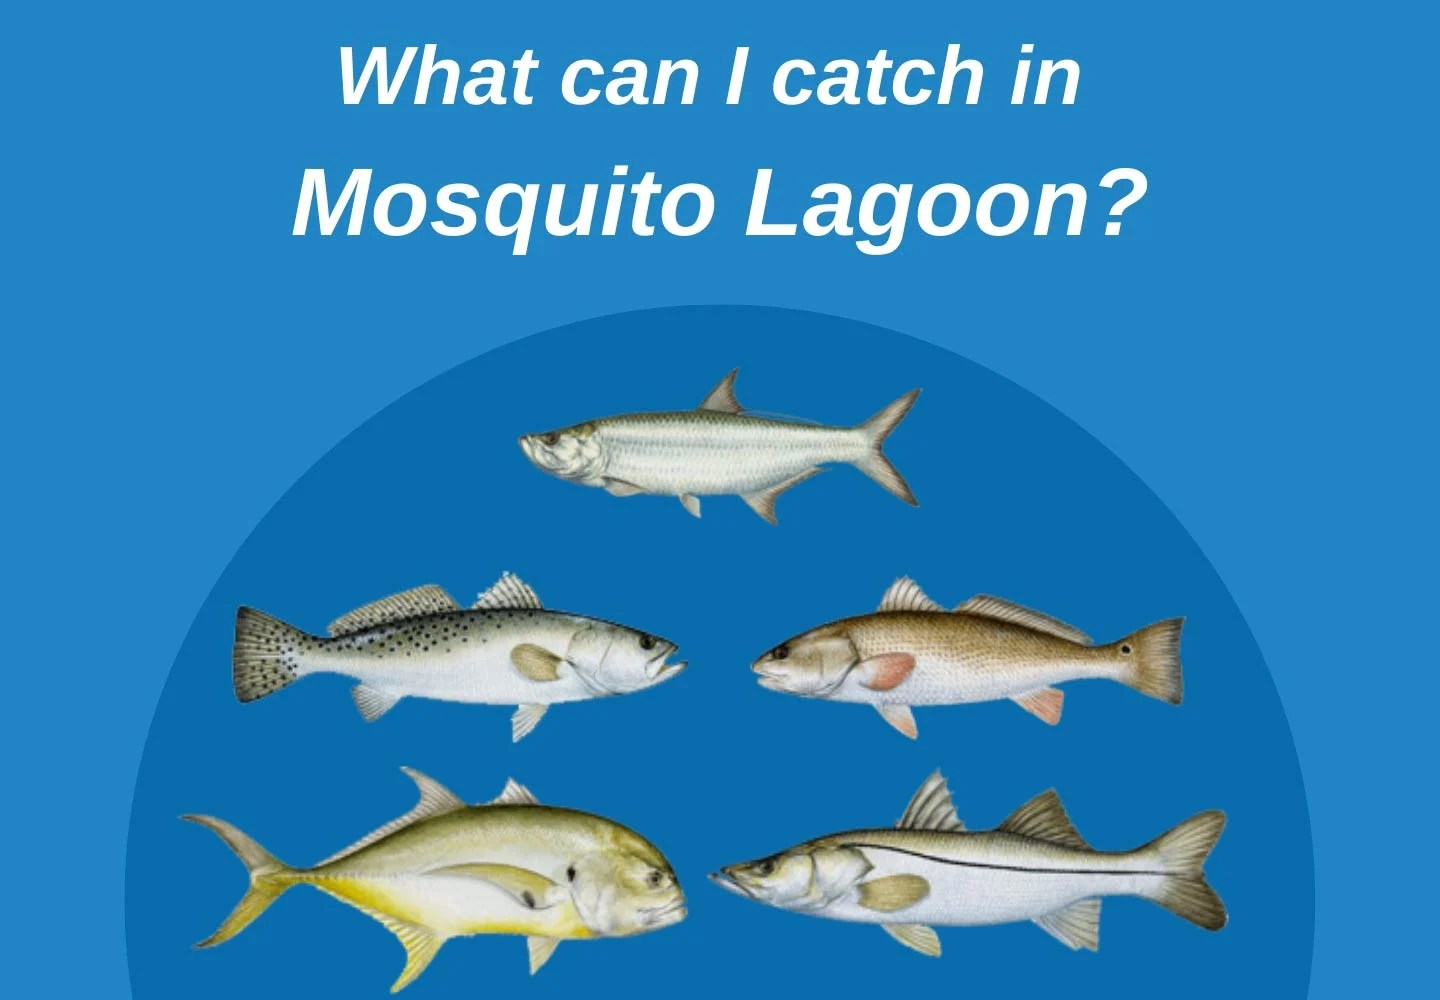 Infographic showing possible catches in Mosquito Lagoon, such as Tarpon, Redfish, Spotted Seatrout, Jack Crevalle, and Snook